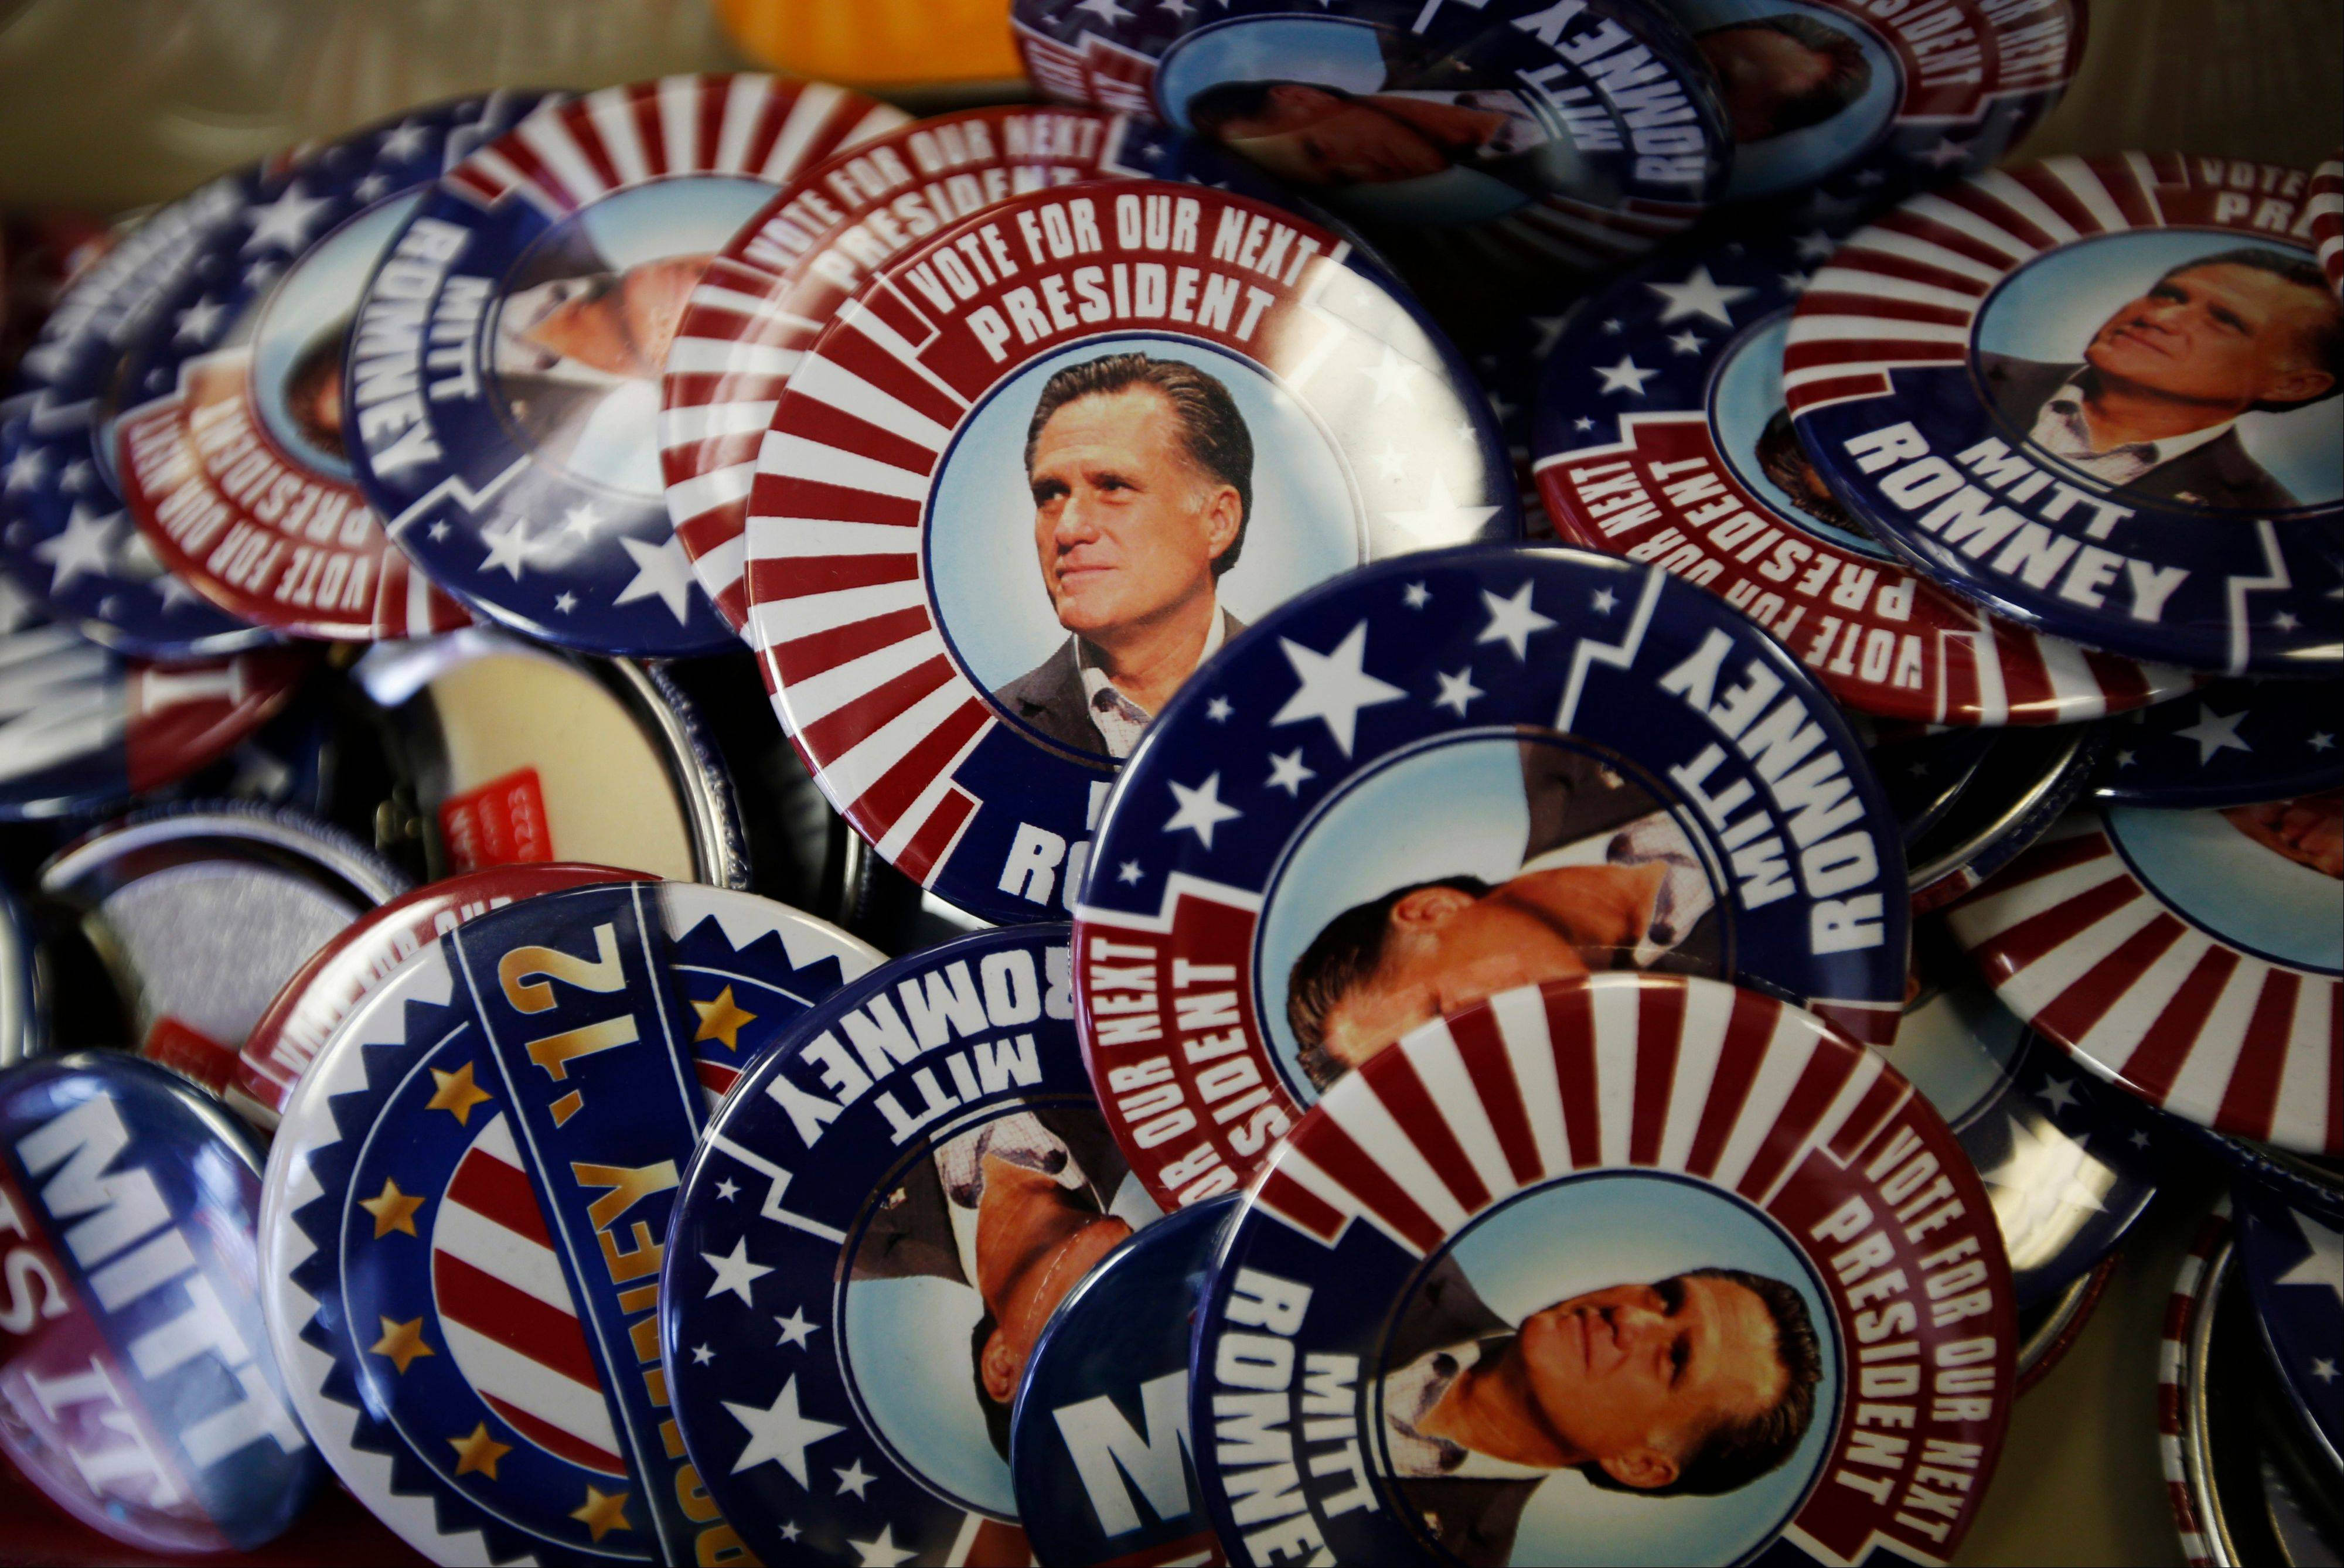 Republican presidential candidate and former Massachusetts Gov. Mitt Romney campaign buttons are displayed ahead of the Republican National Convention in Tampa, Fla., Sunday.